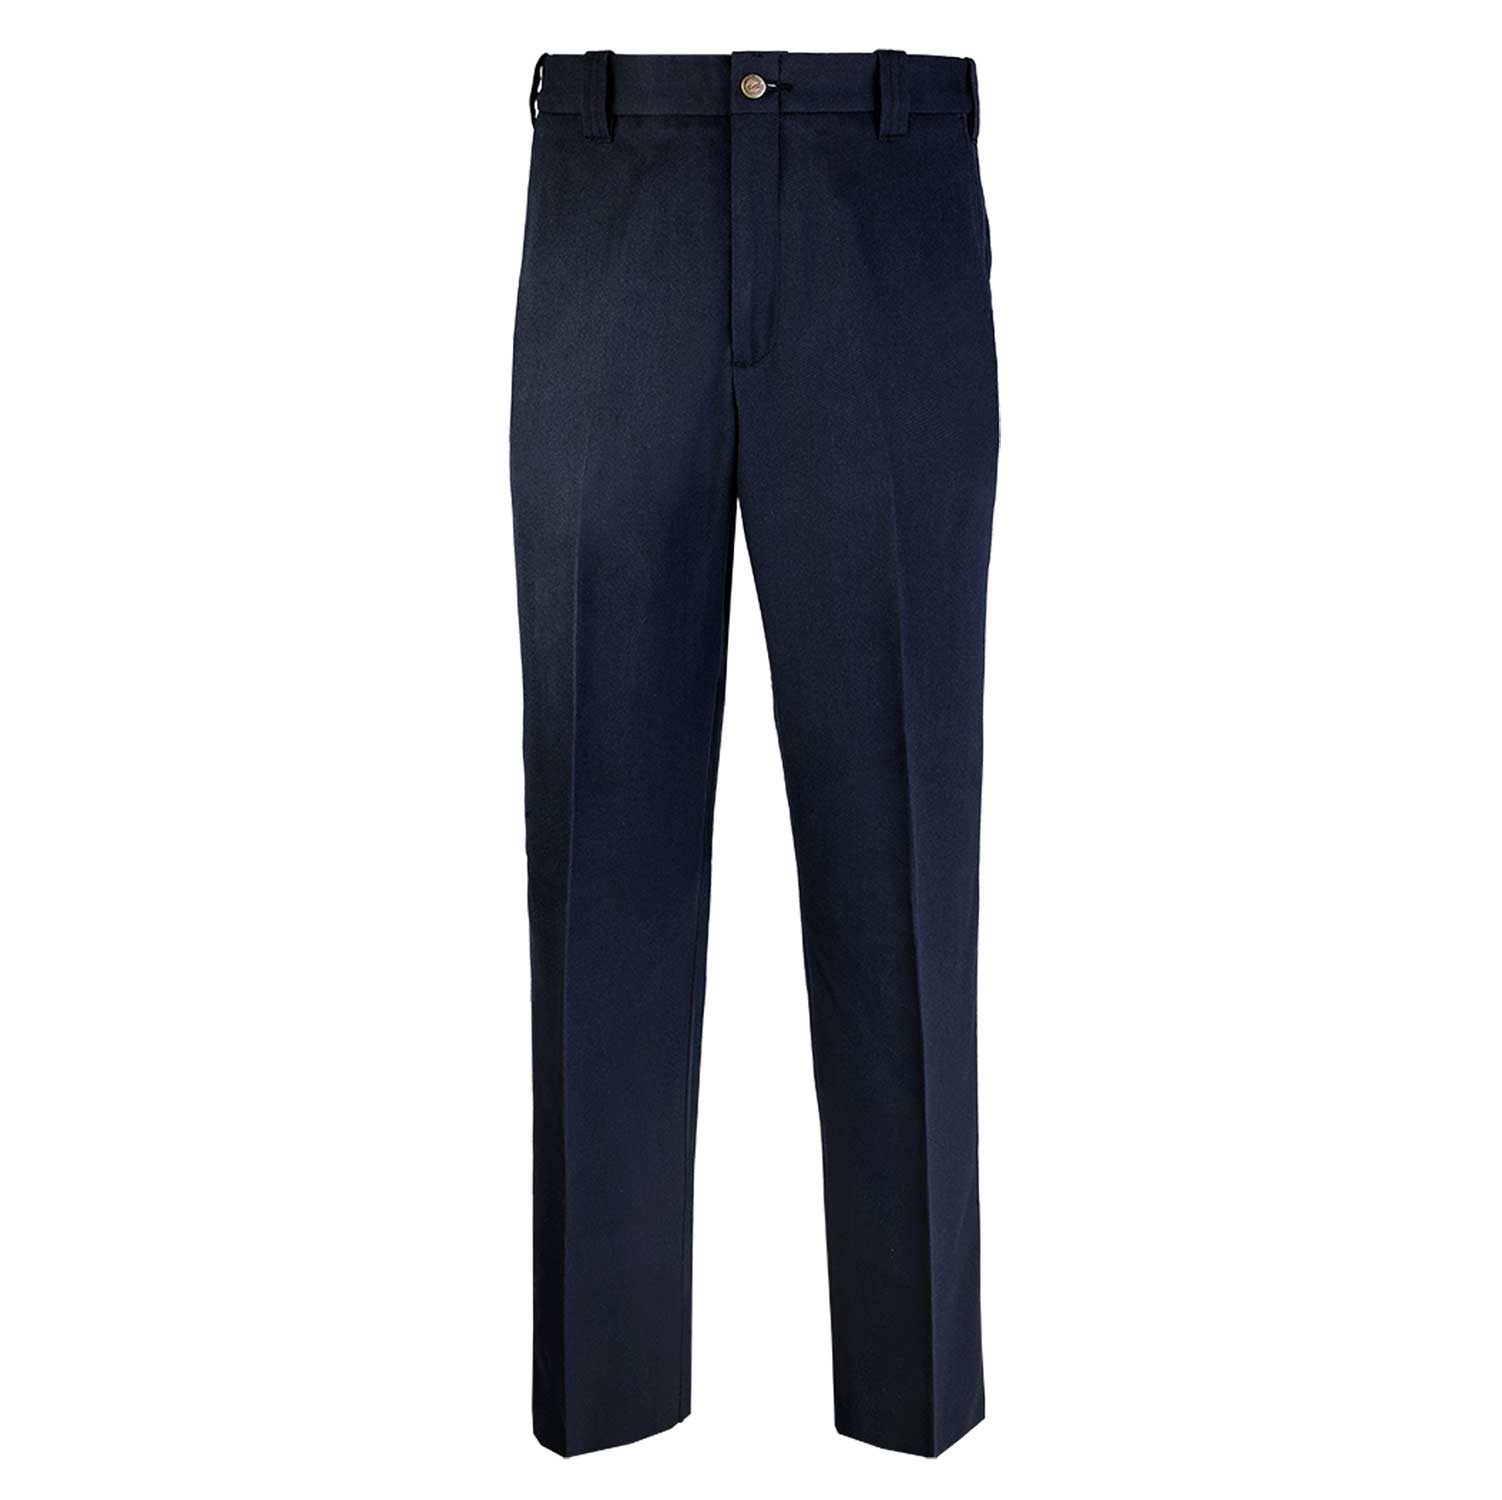 Cross FR 4 Pocket Station Pant by Flying Cross